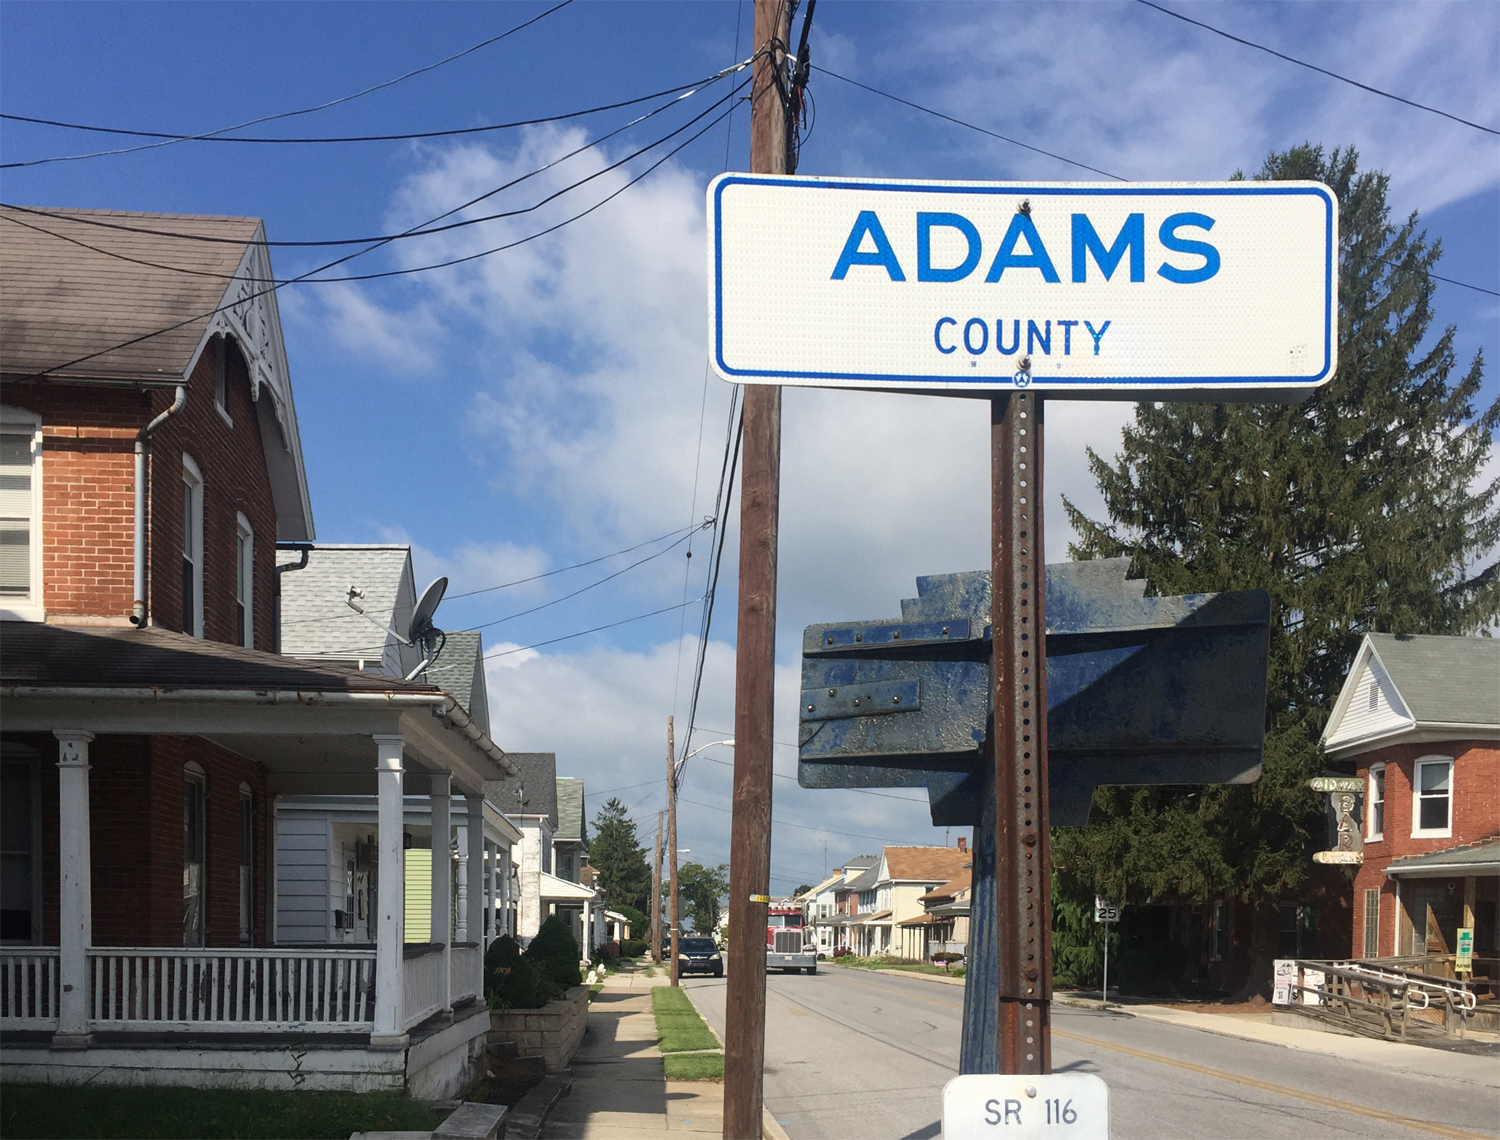 Entering Adams County from the York County Line, Pennsylvania